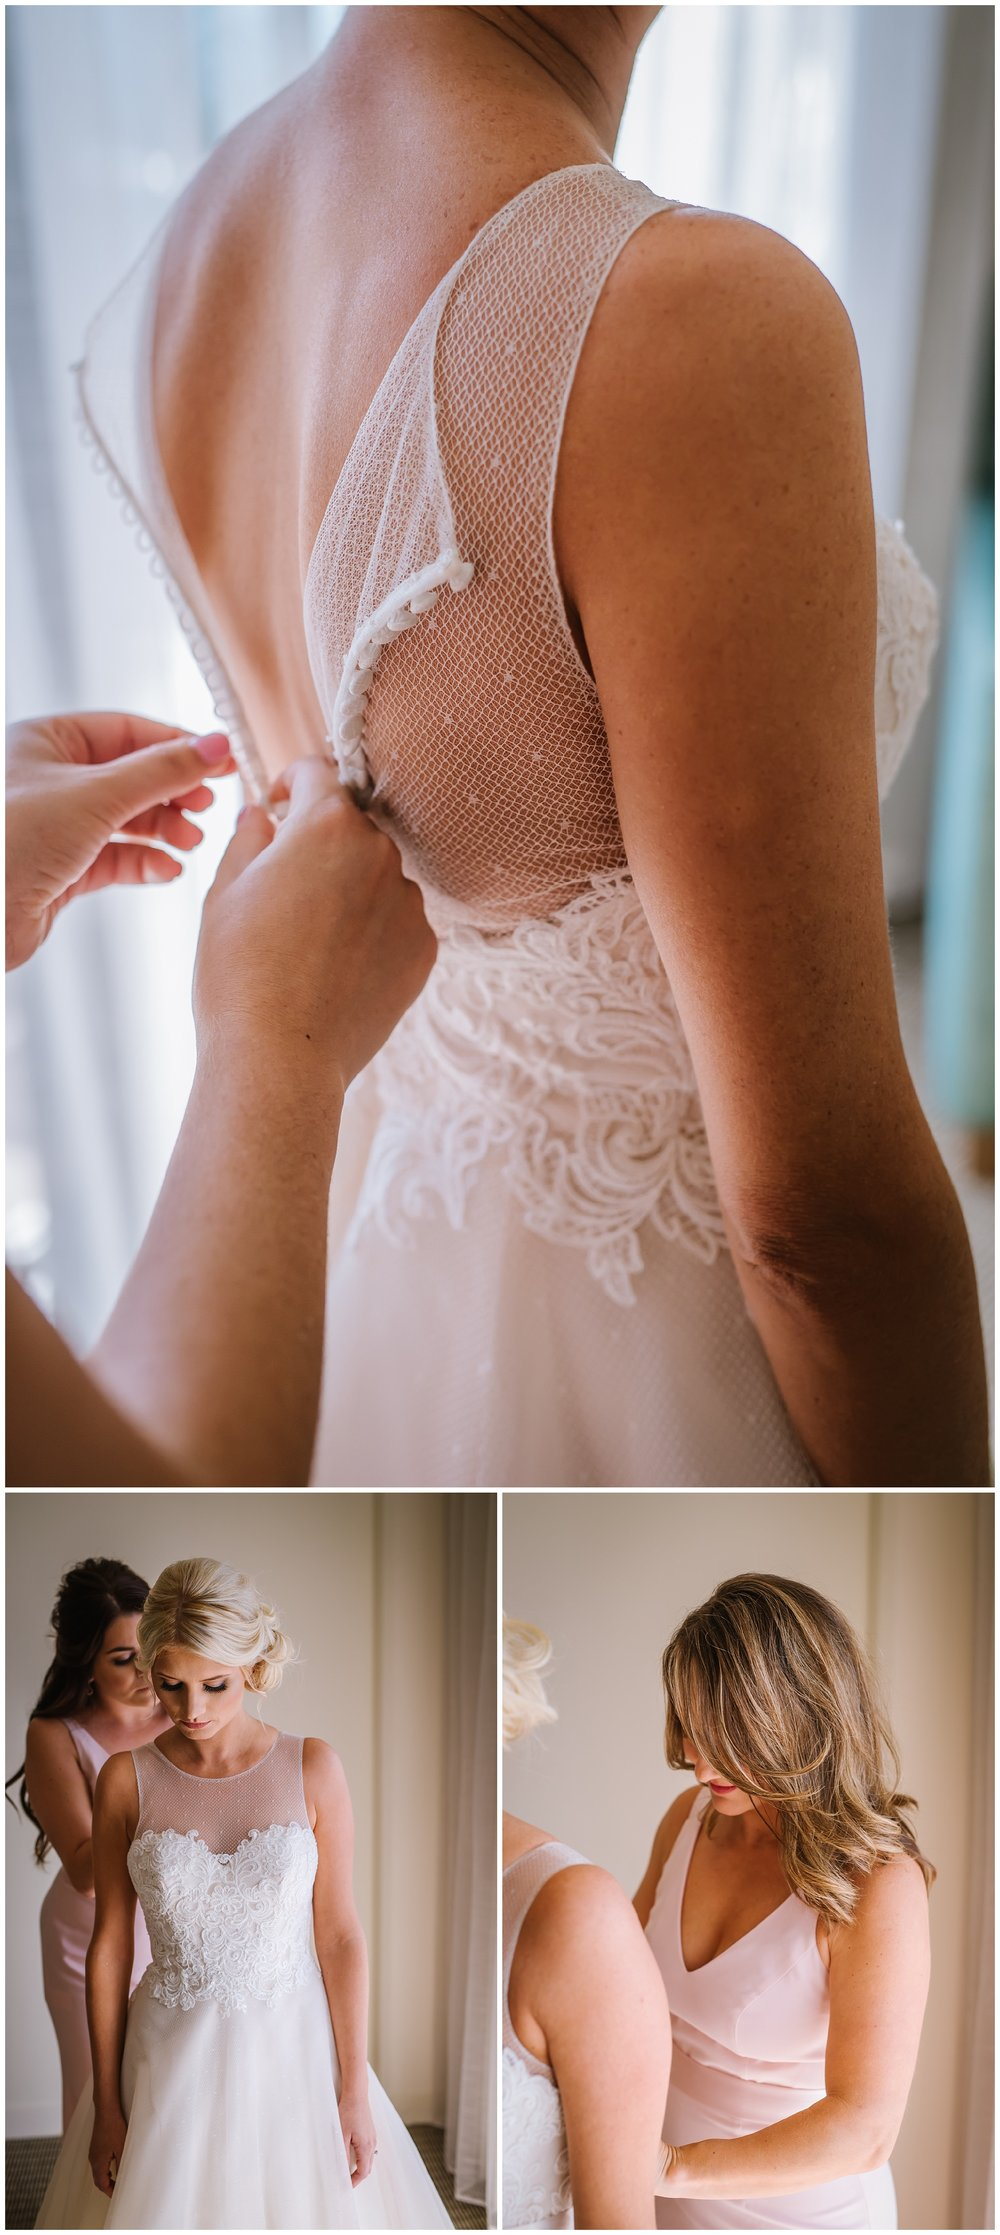 Sarasota-wedding-photographer-hyatt-regency-blush_0018.jpg